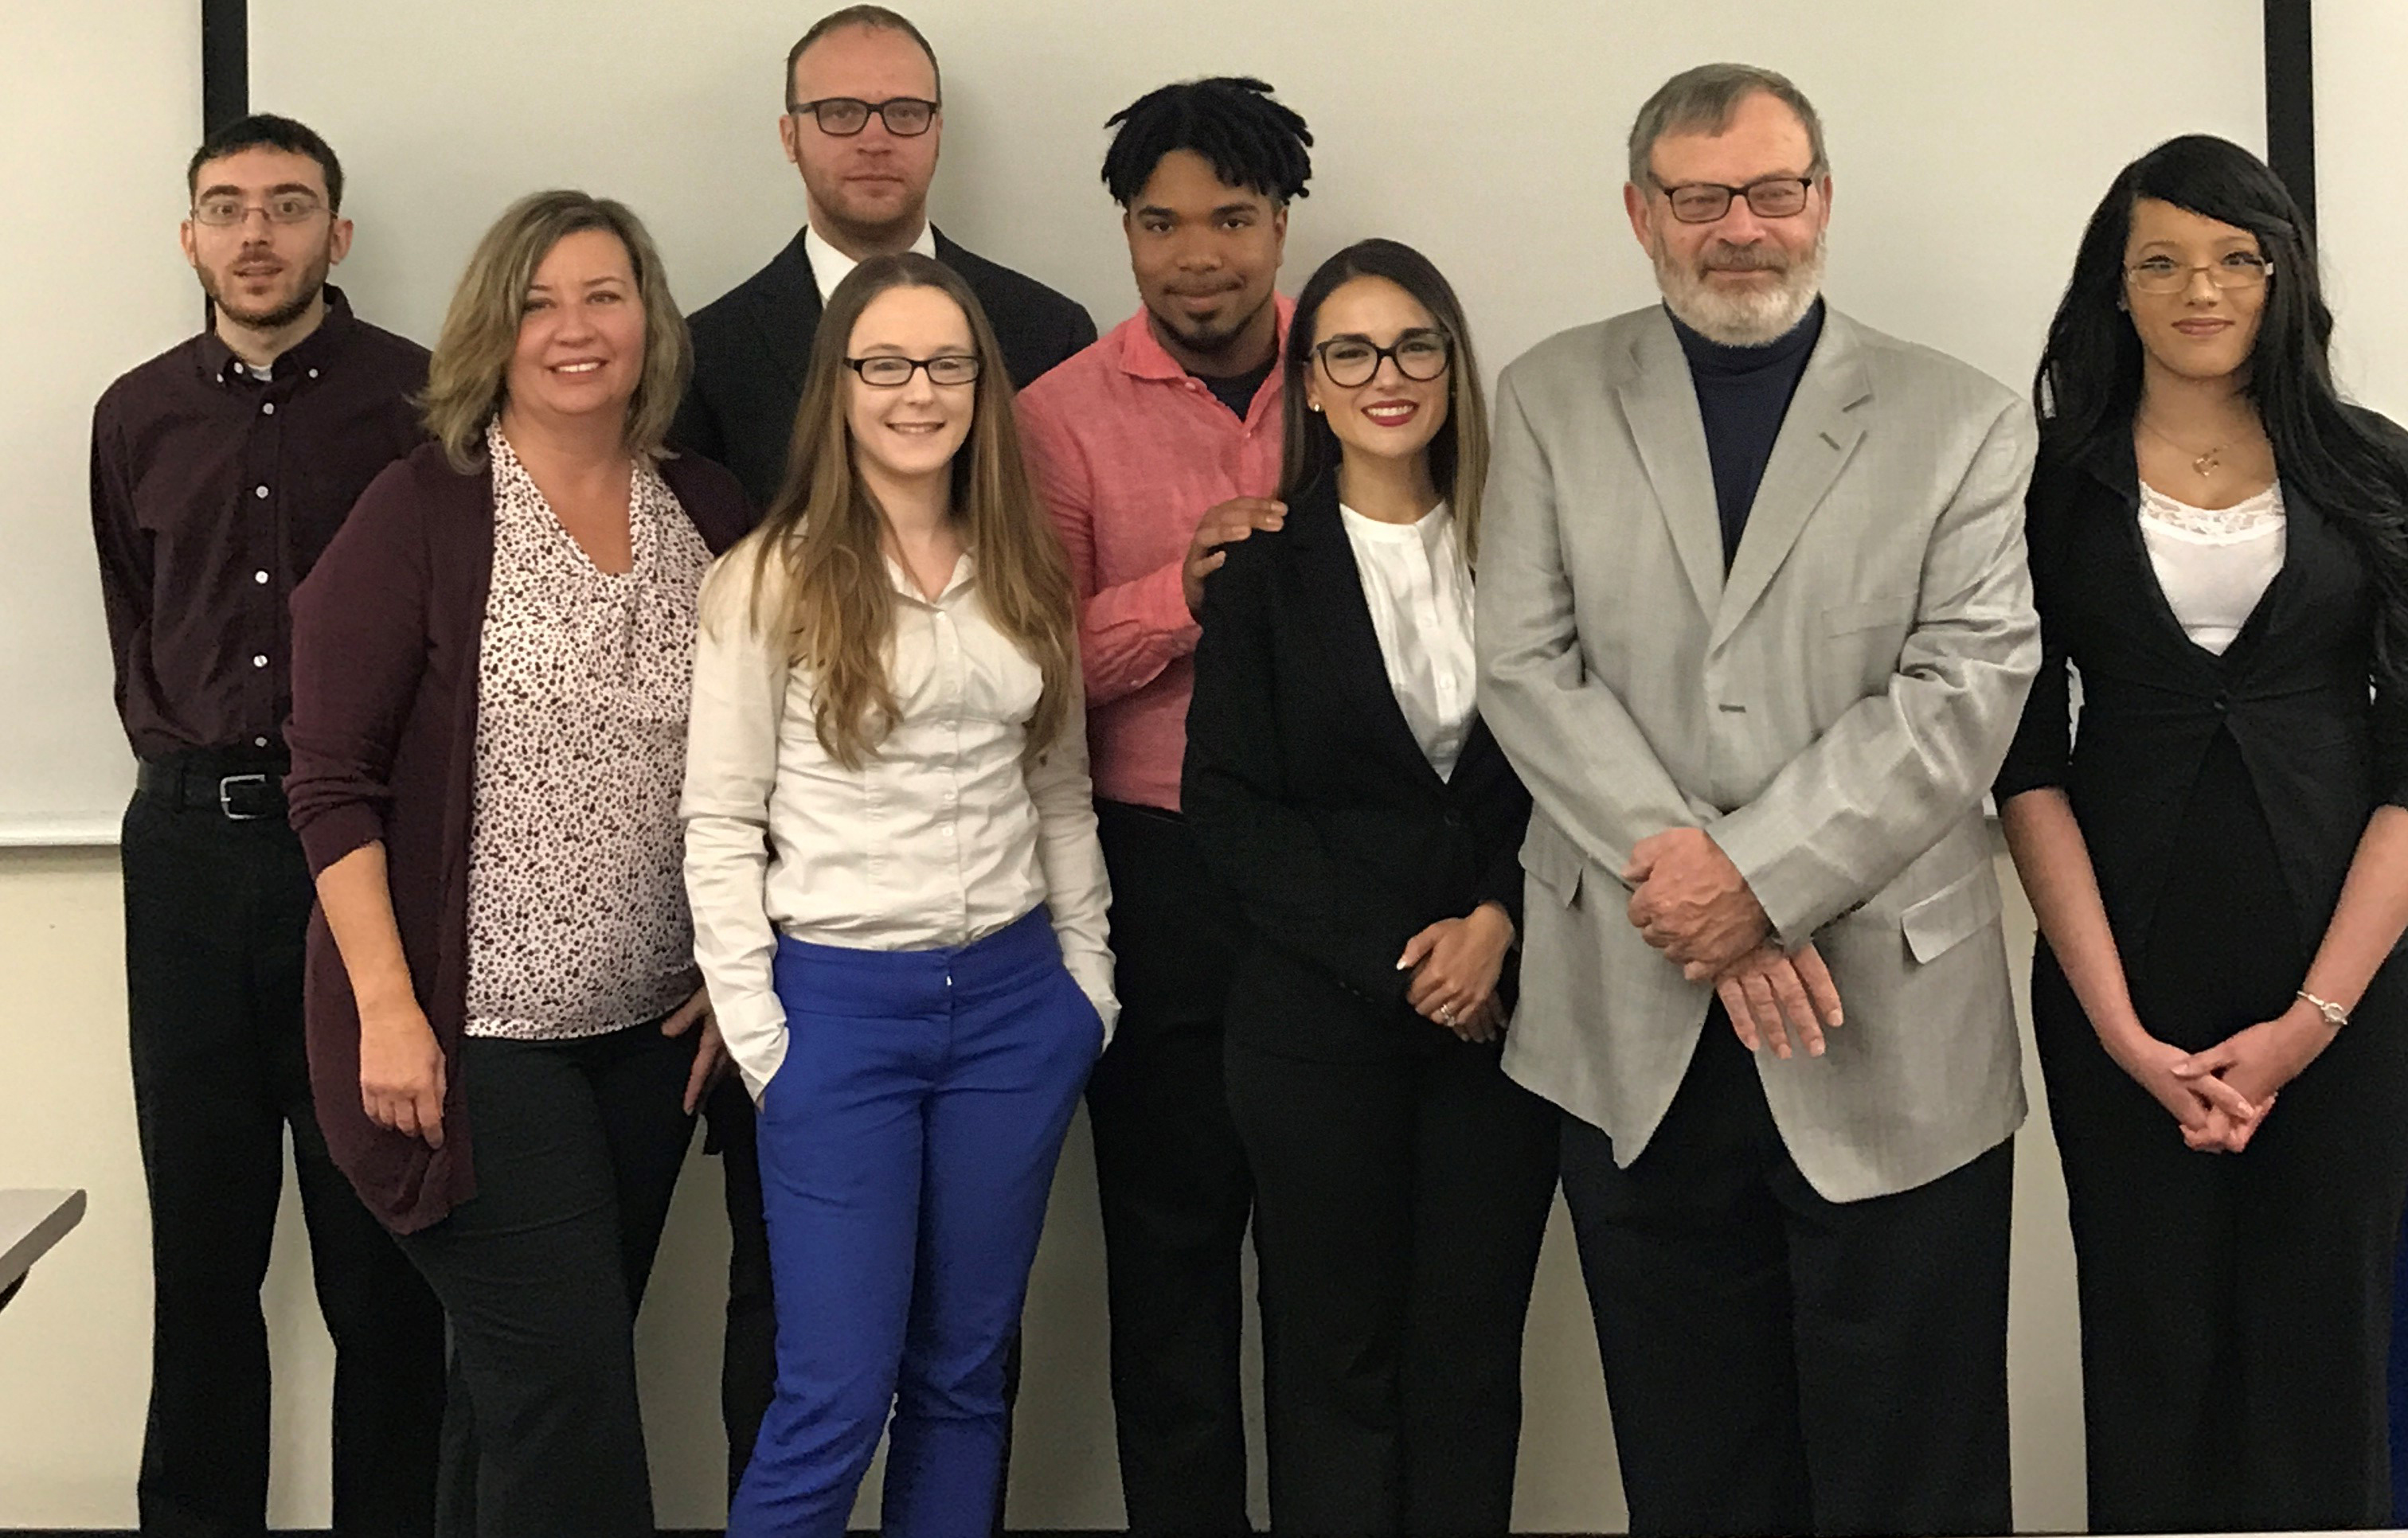 A photo of students in MWCC's 2018 Strategic Management Capstone class. Professor John Reilly and client Diane St. Jean are also depicted.